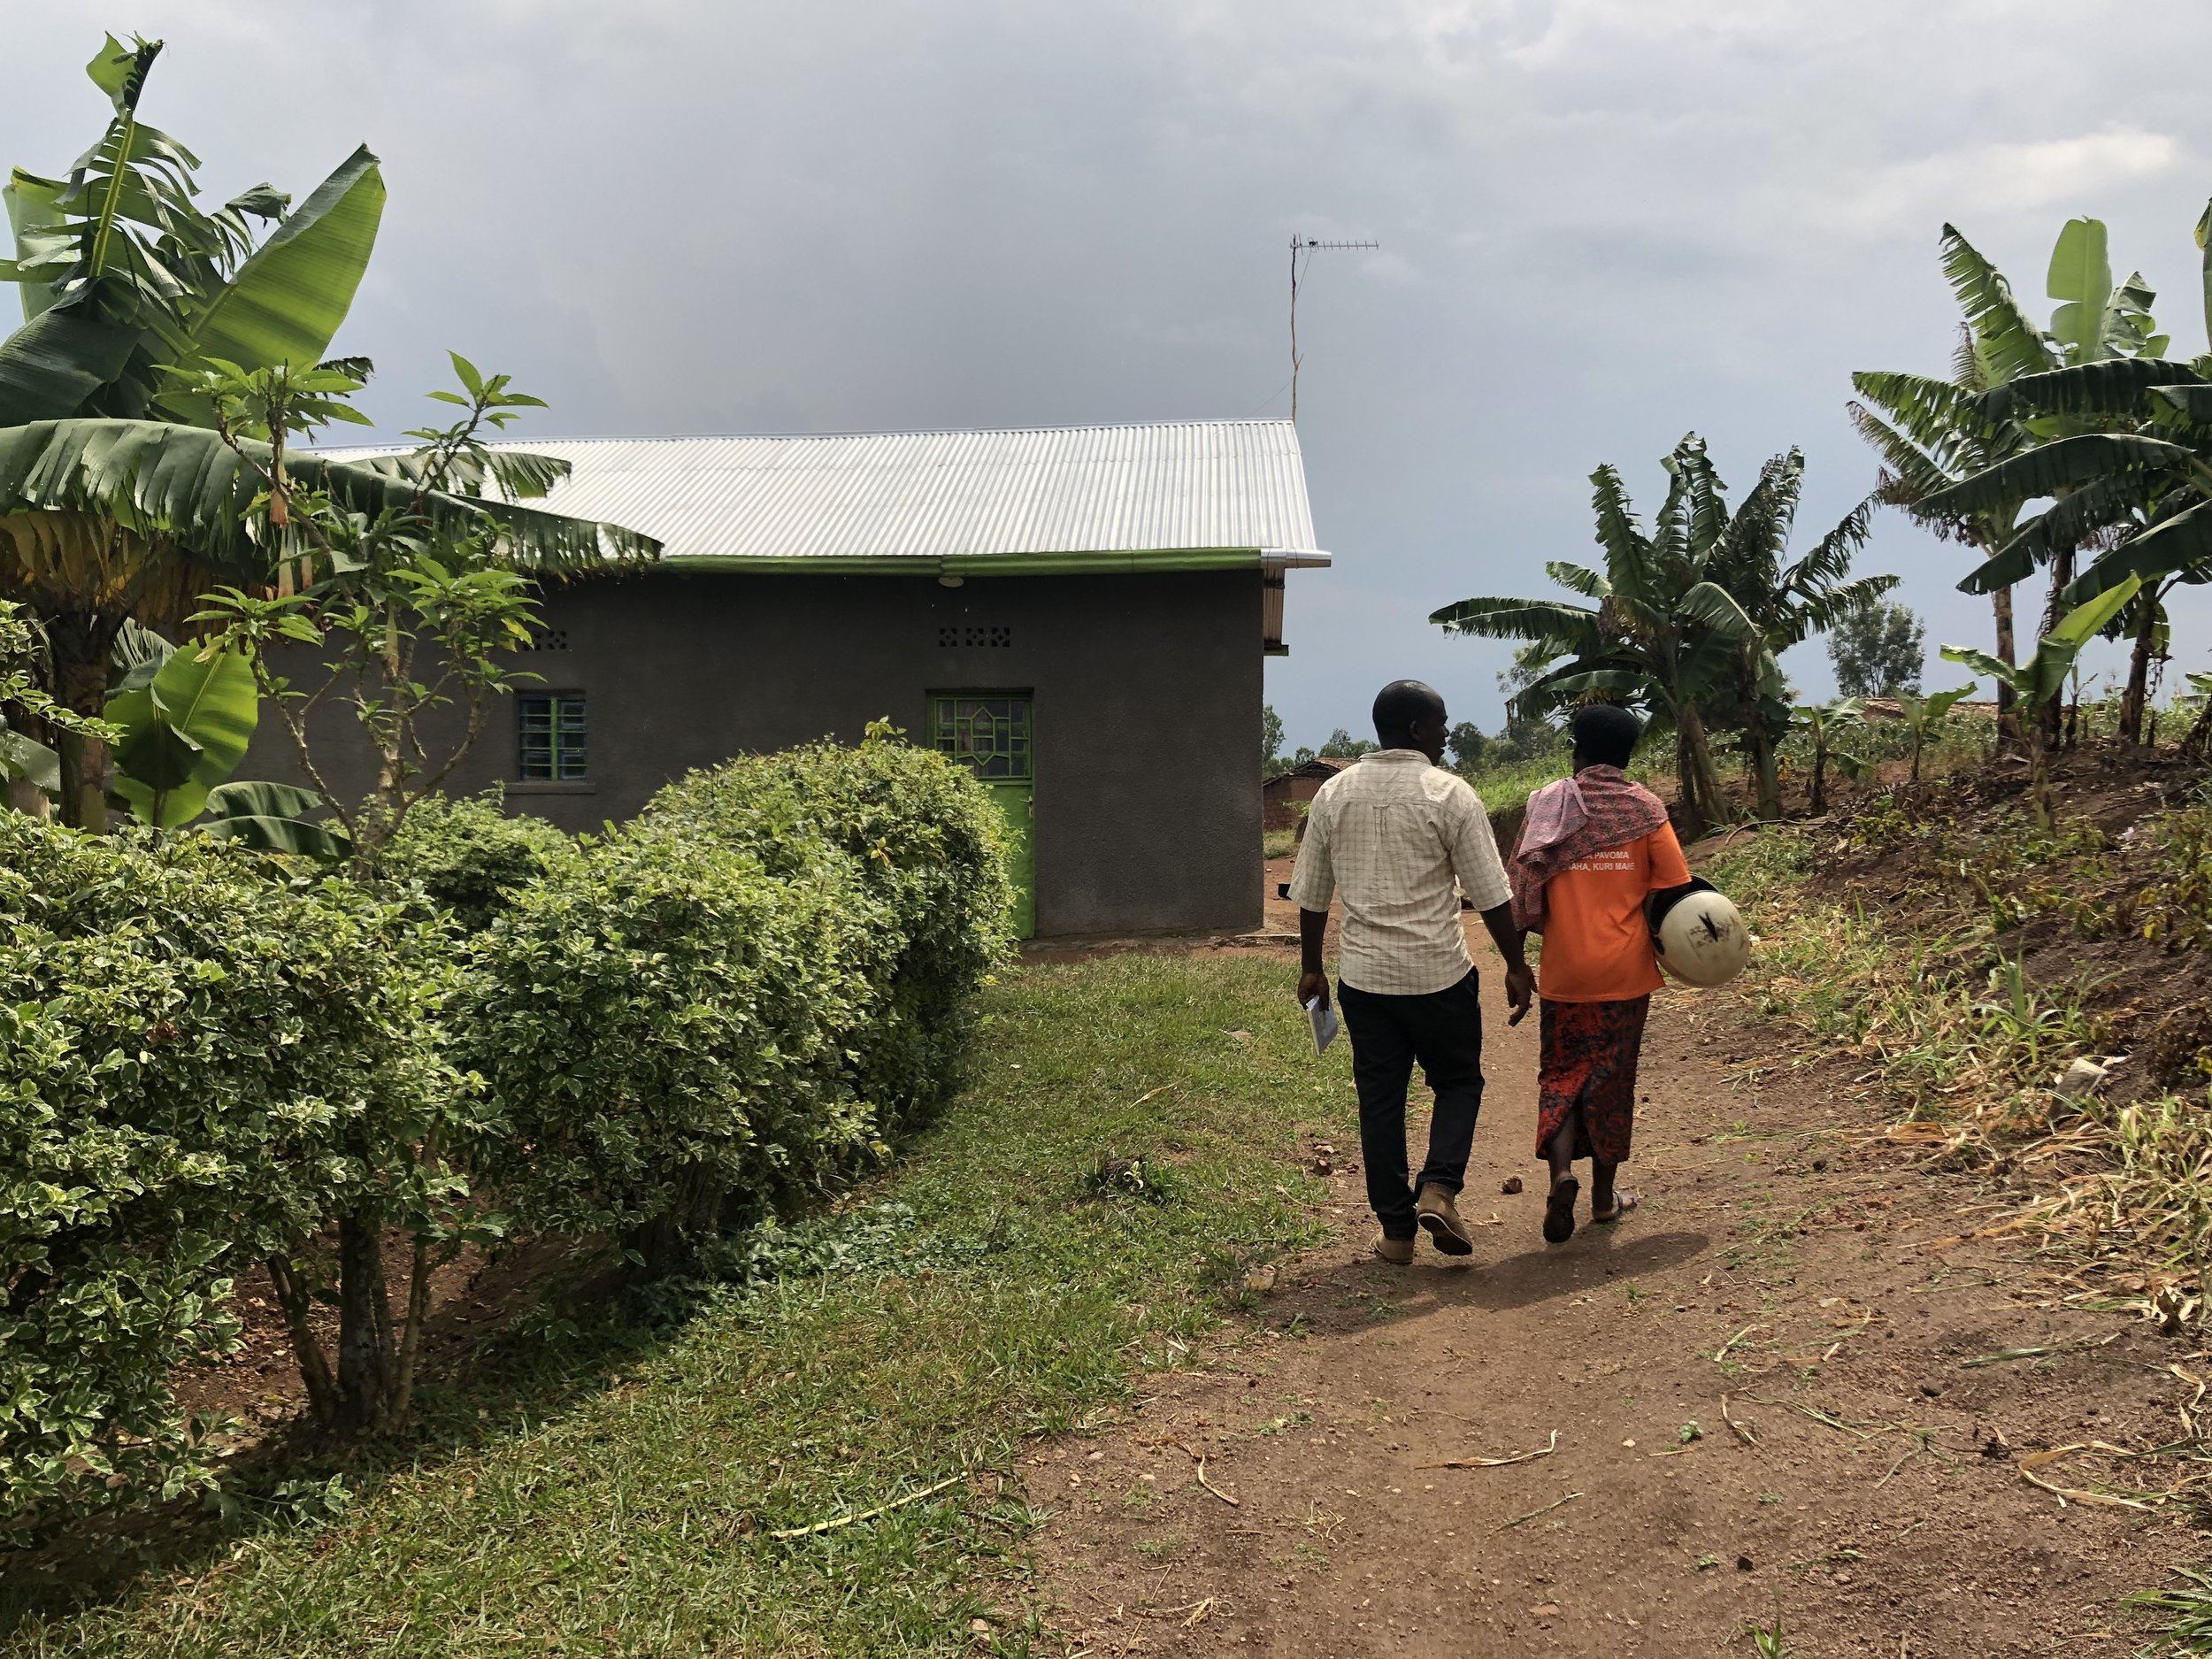 My field parter, Jean Baptiste, leading the way to customer's houses. We walked door to door to visit customers at home.